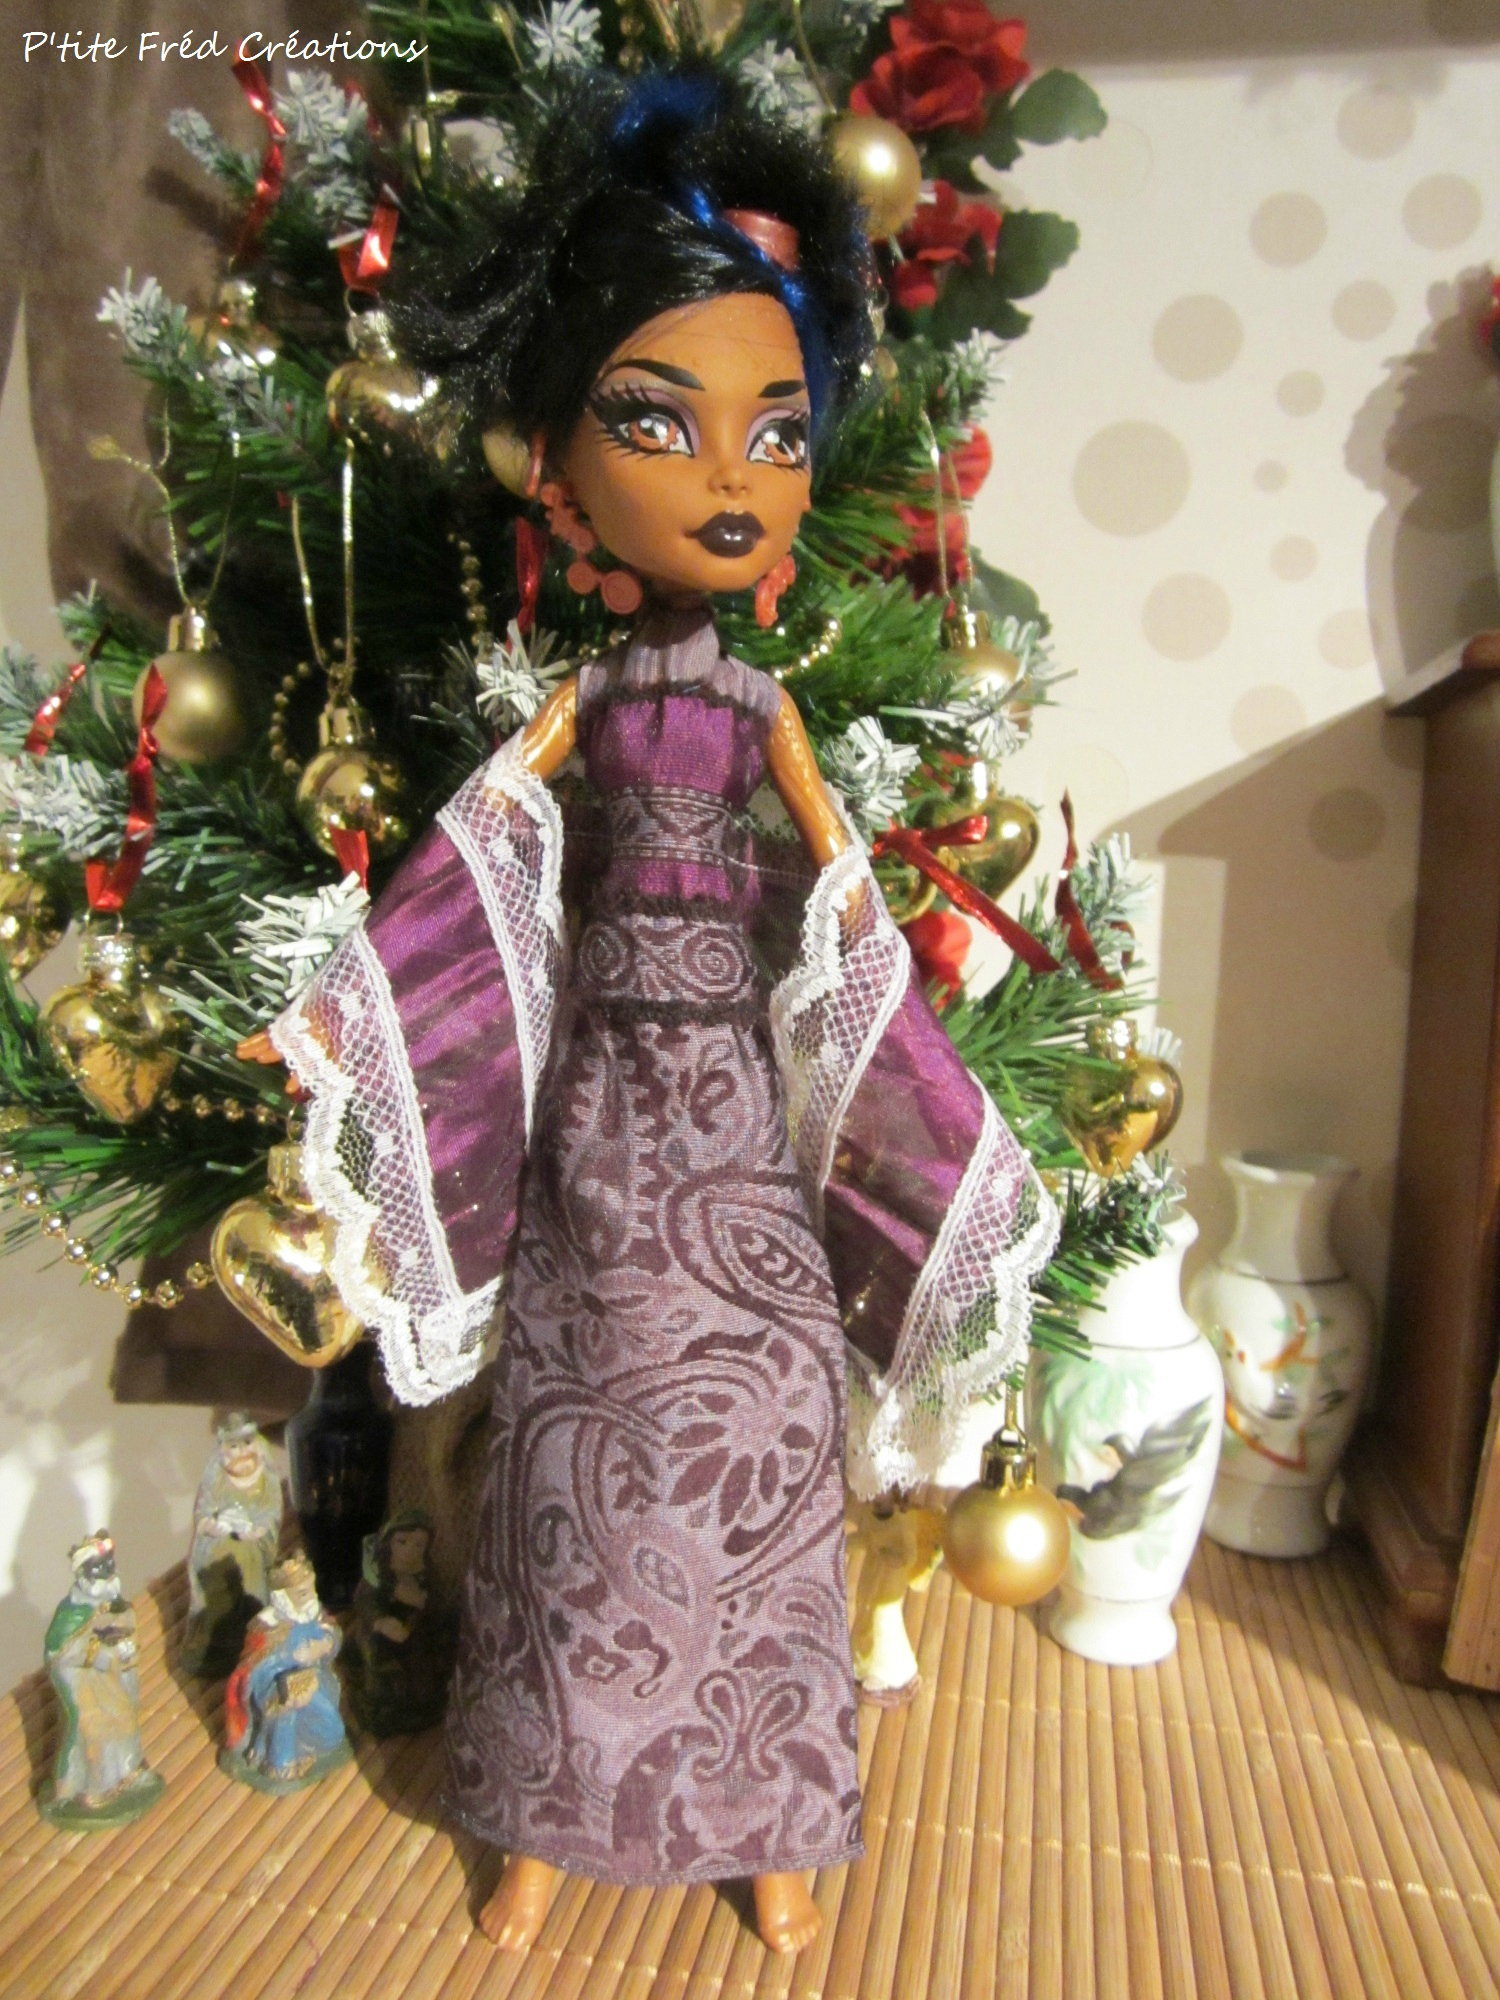 Une robe pour robecca steam n 113 p 39 tite fr d cr ations et midinettes by christophe - Tenue monster high ...